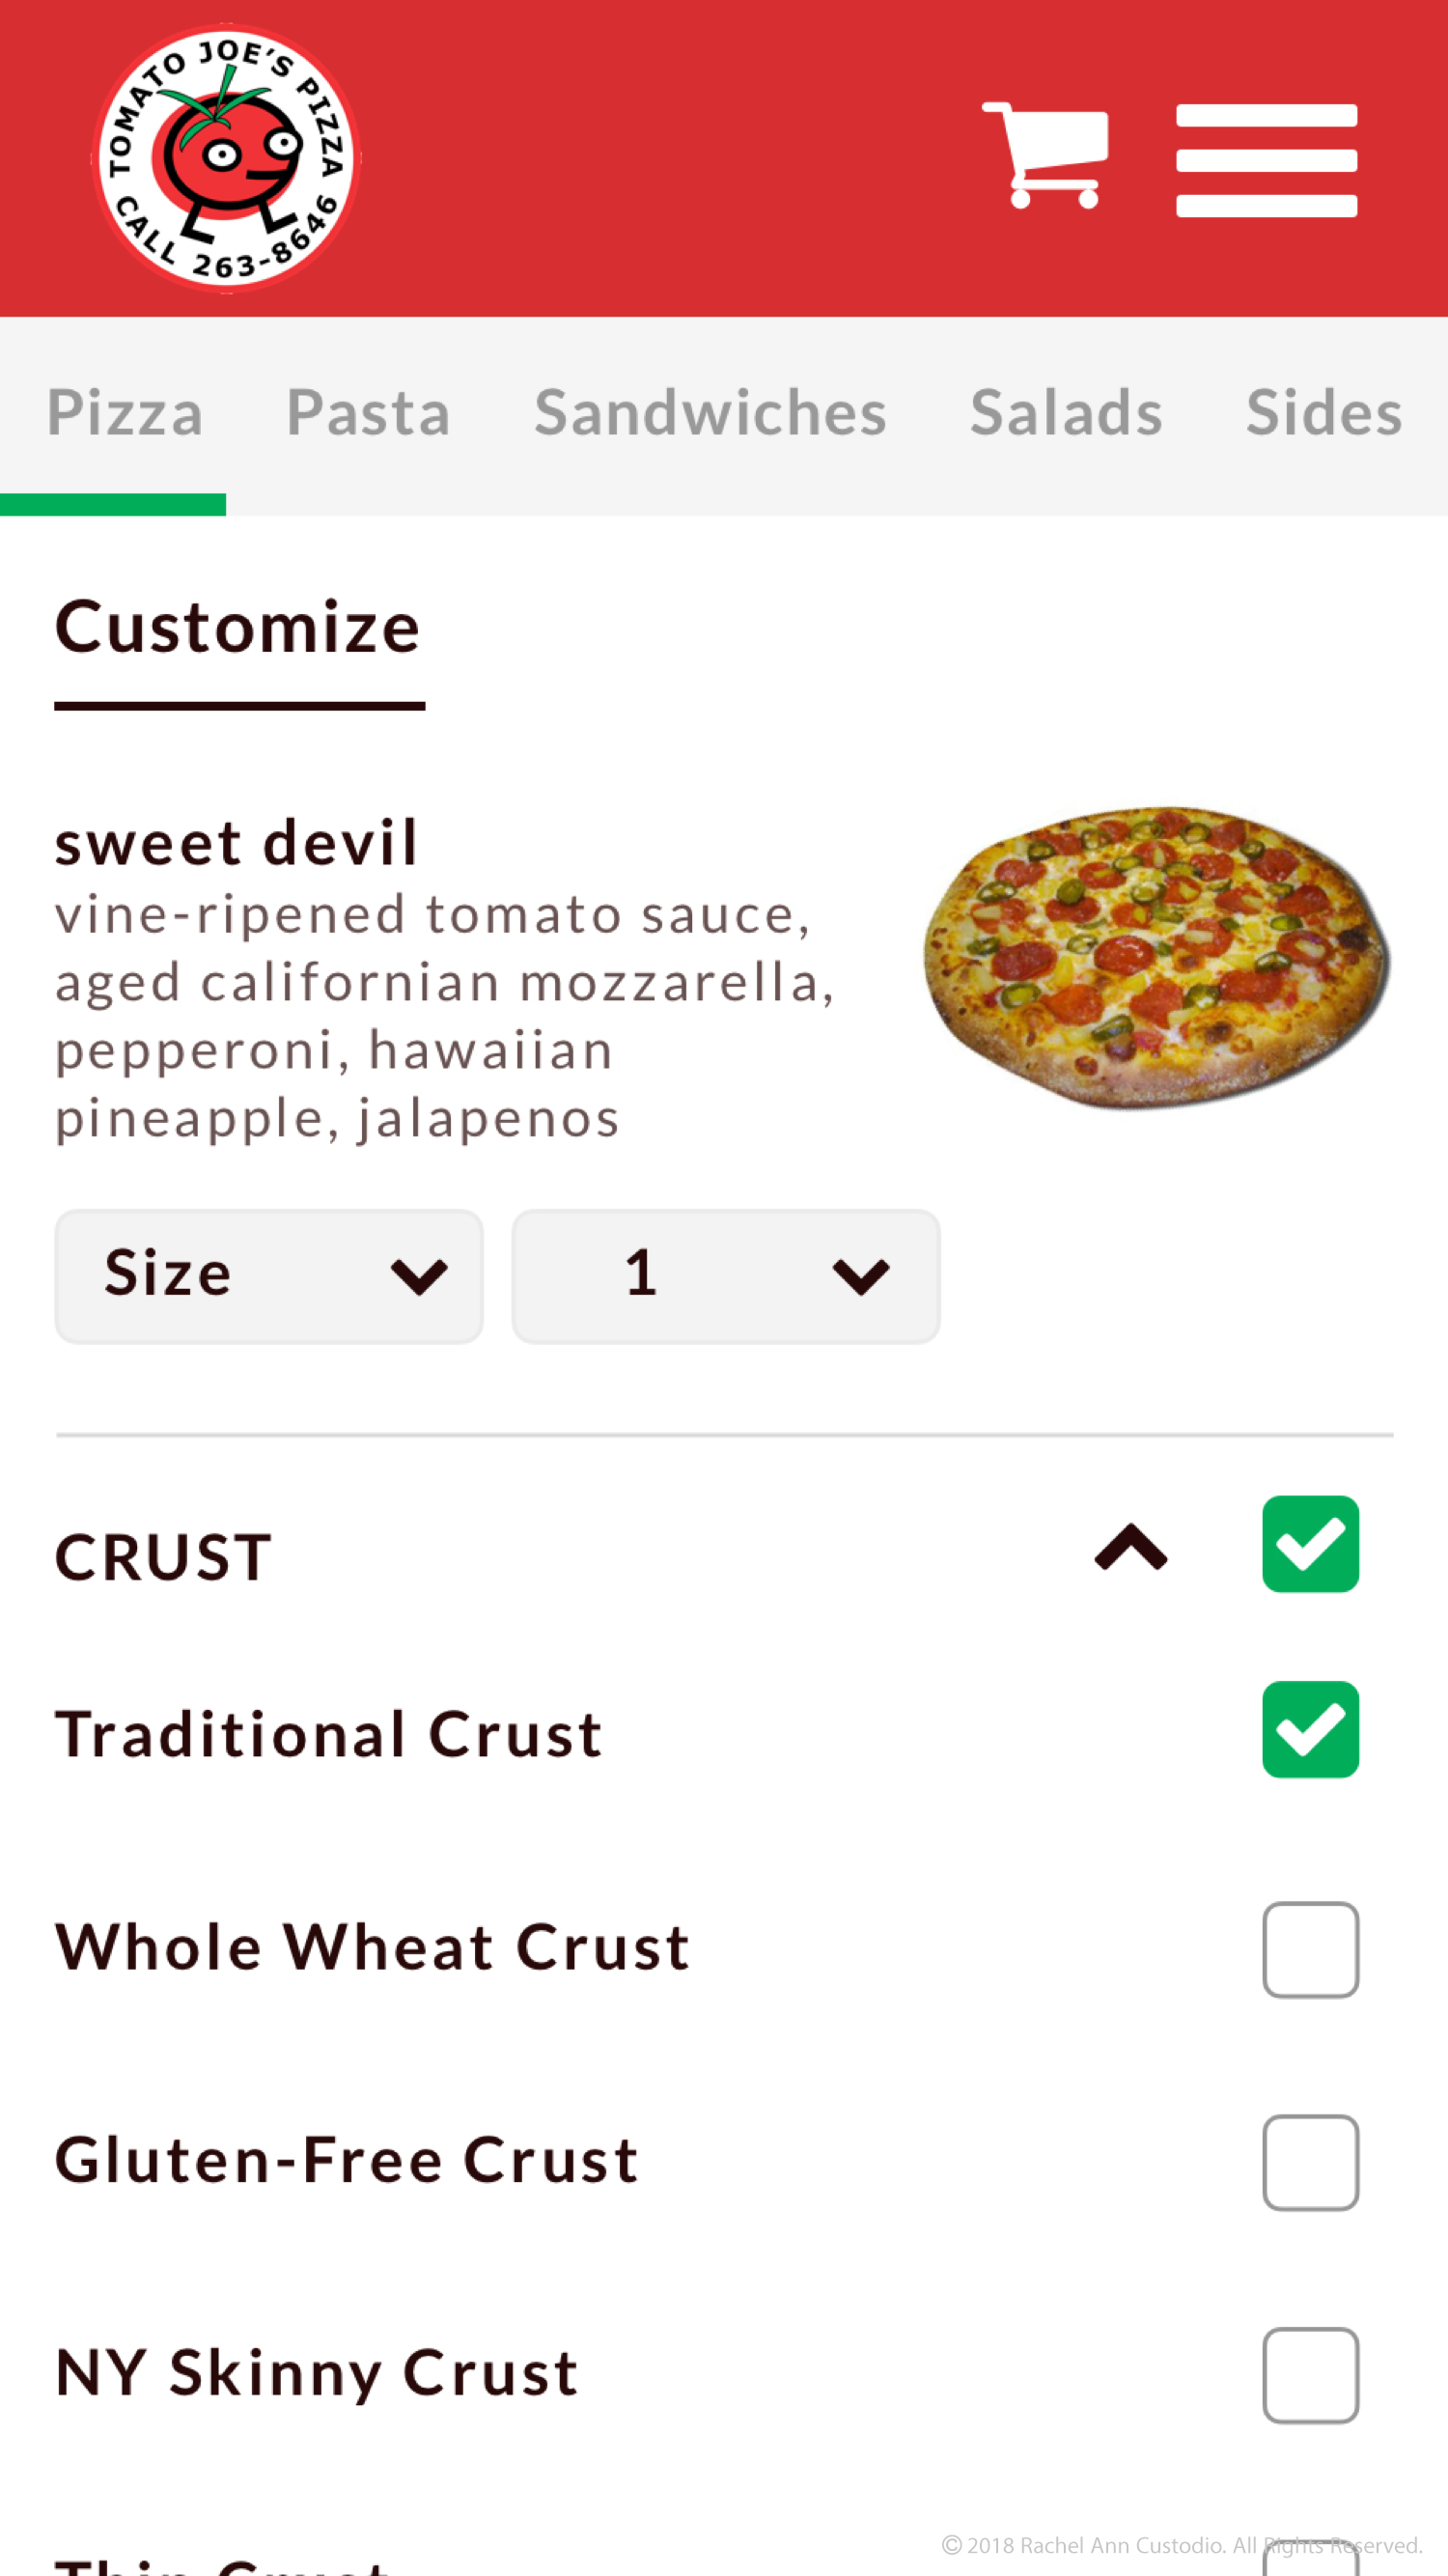 Custom Crust Menu Design